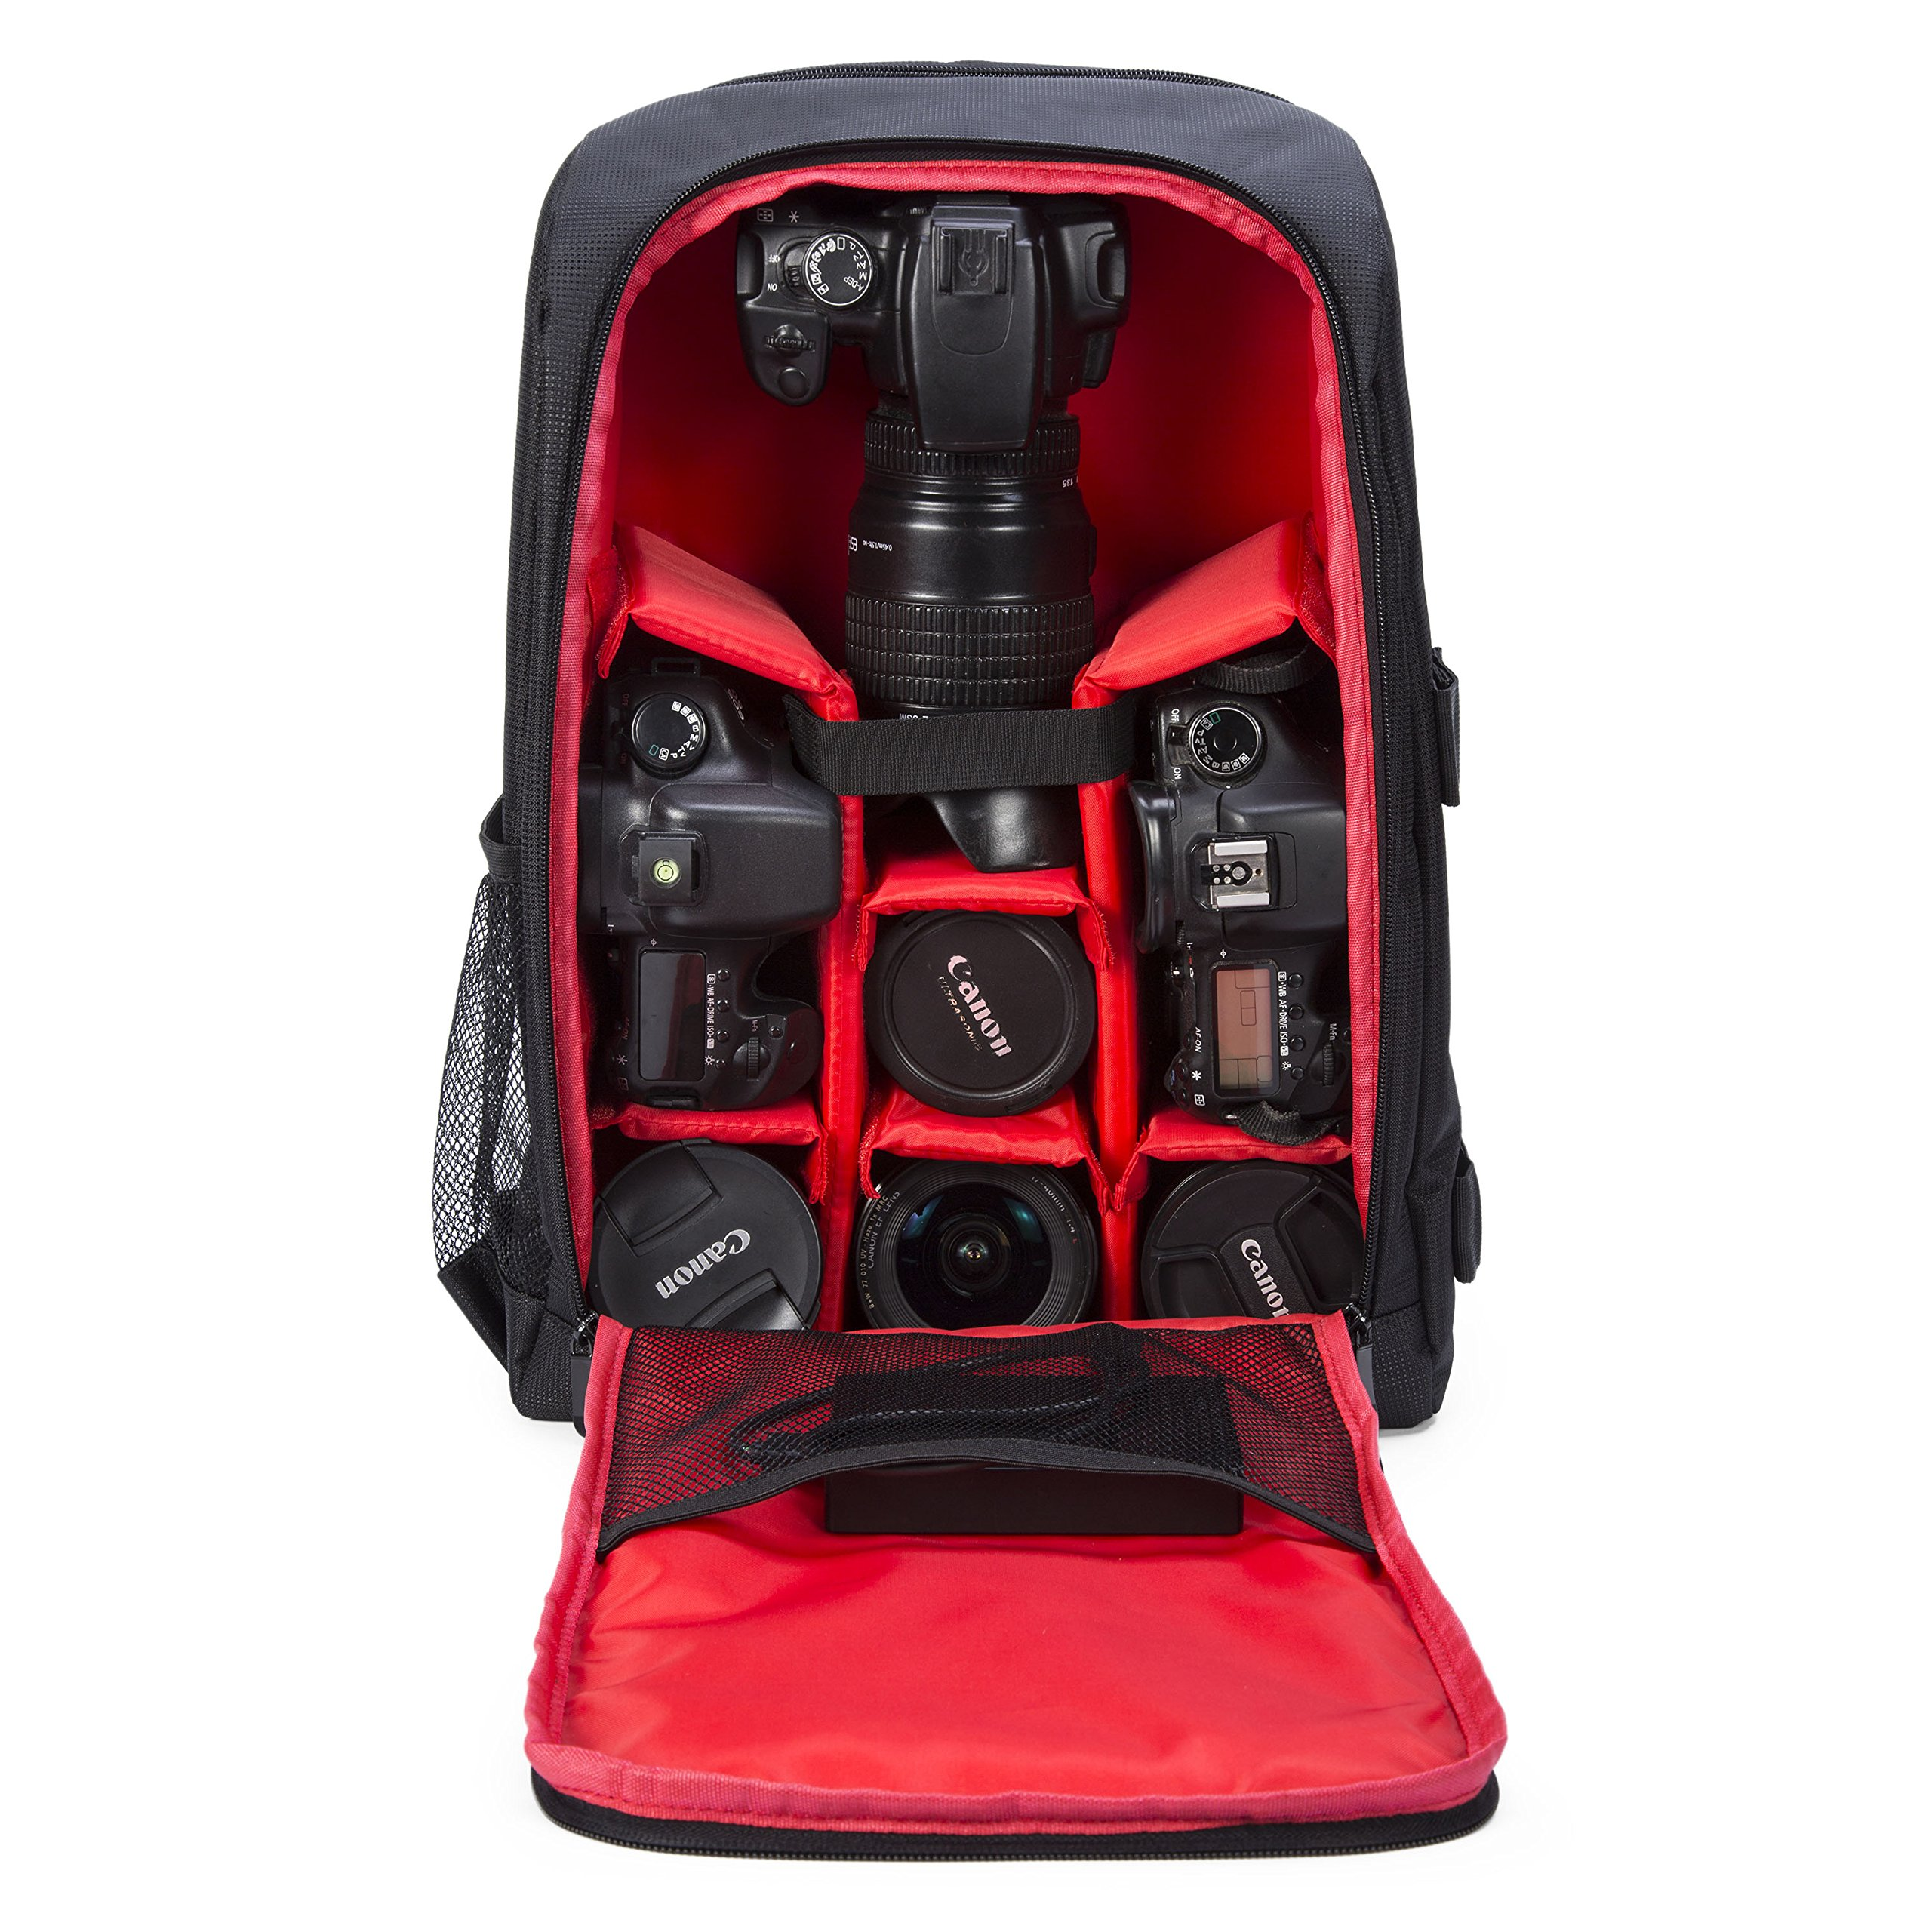 G-raphy Camera Backpack Waterproof for DSLR/SLR Cameras (Canon, Nikon, Sony and etc), Laptops, Tripods, Flashes, Lenses and Accessories (Red)